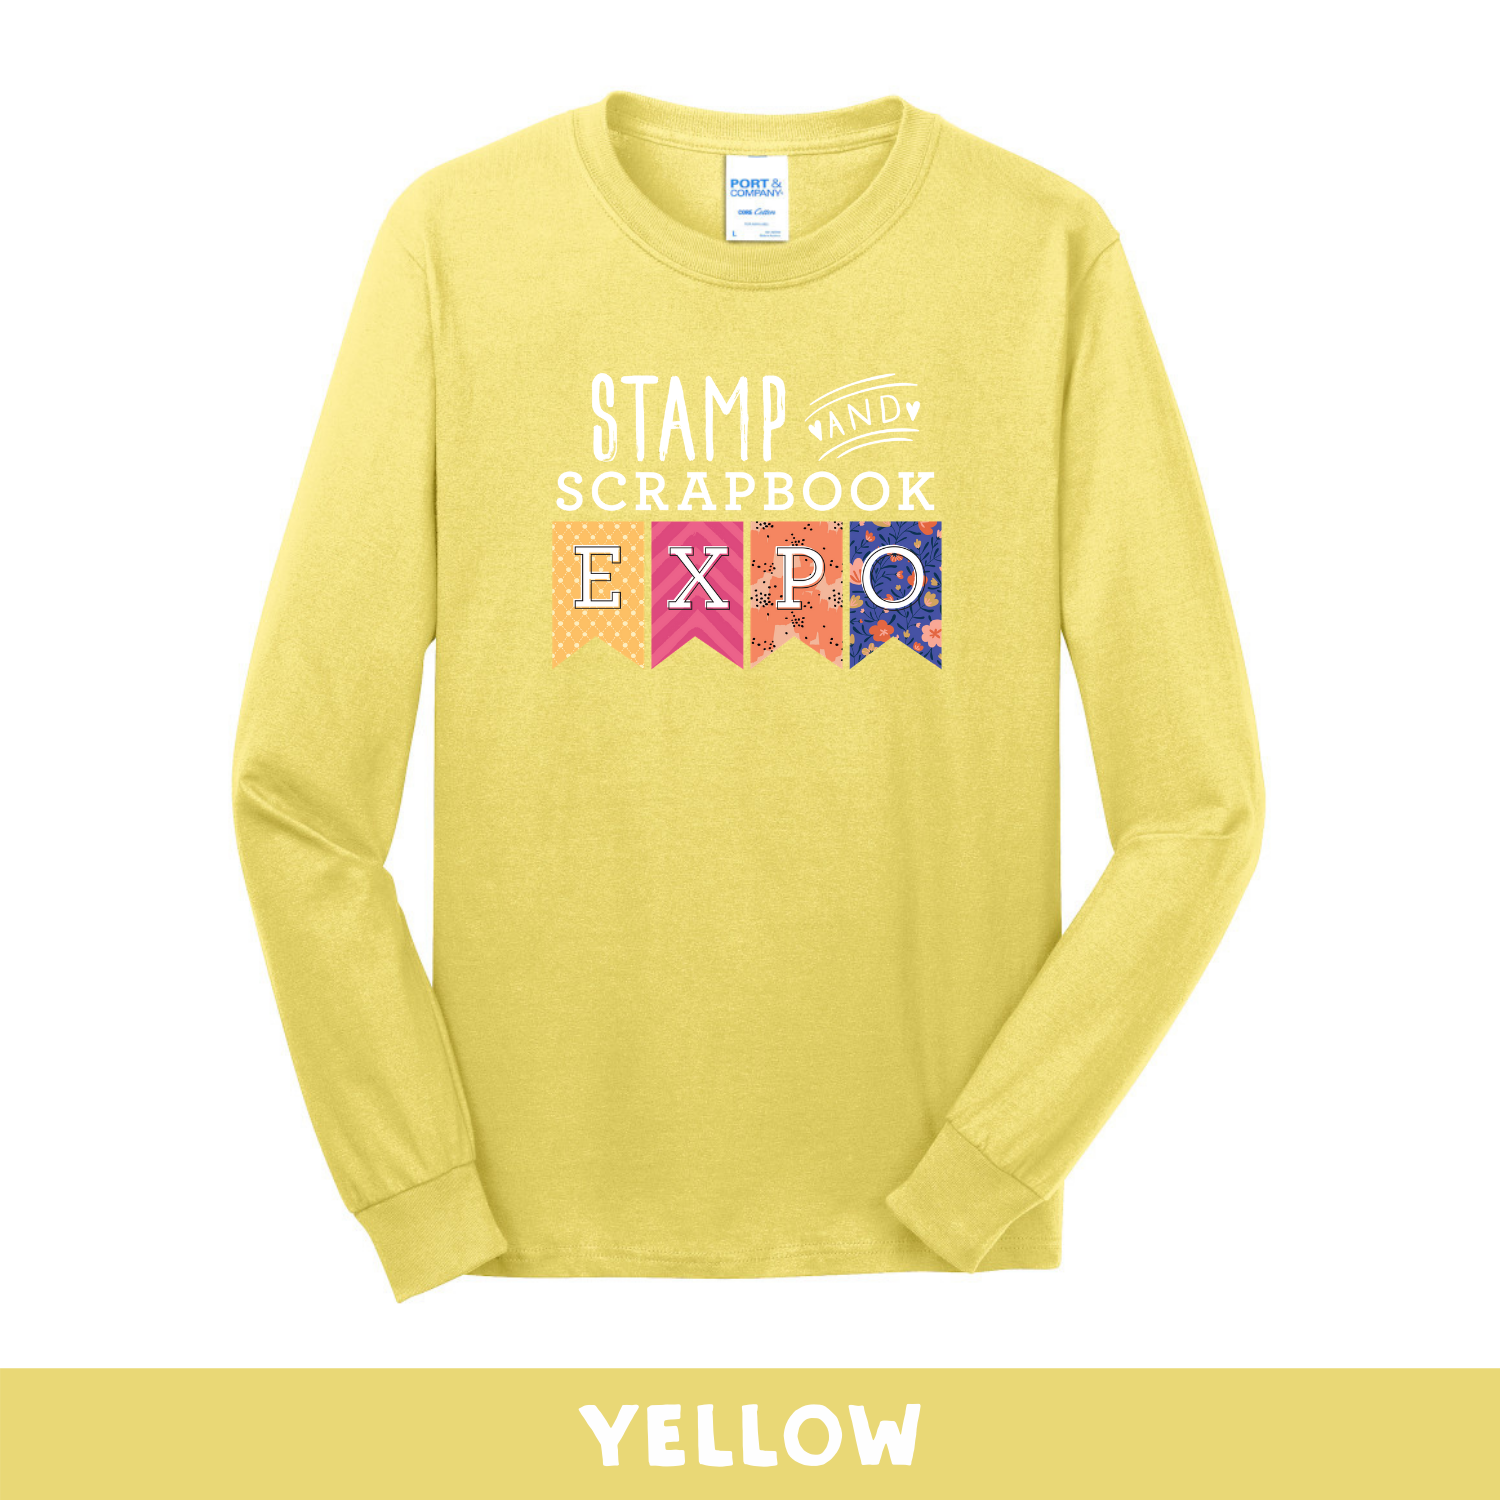 Yellow -  Long Sleeve Unisex T-Shirt - Stamp & Scrapbook Expo Color Logo